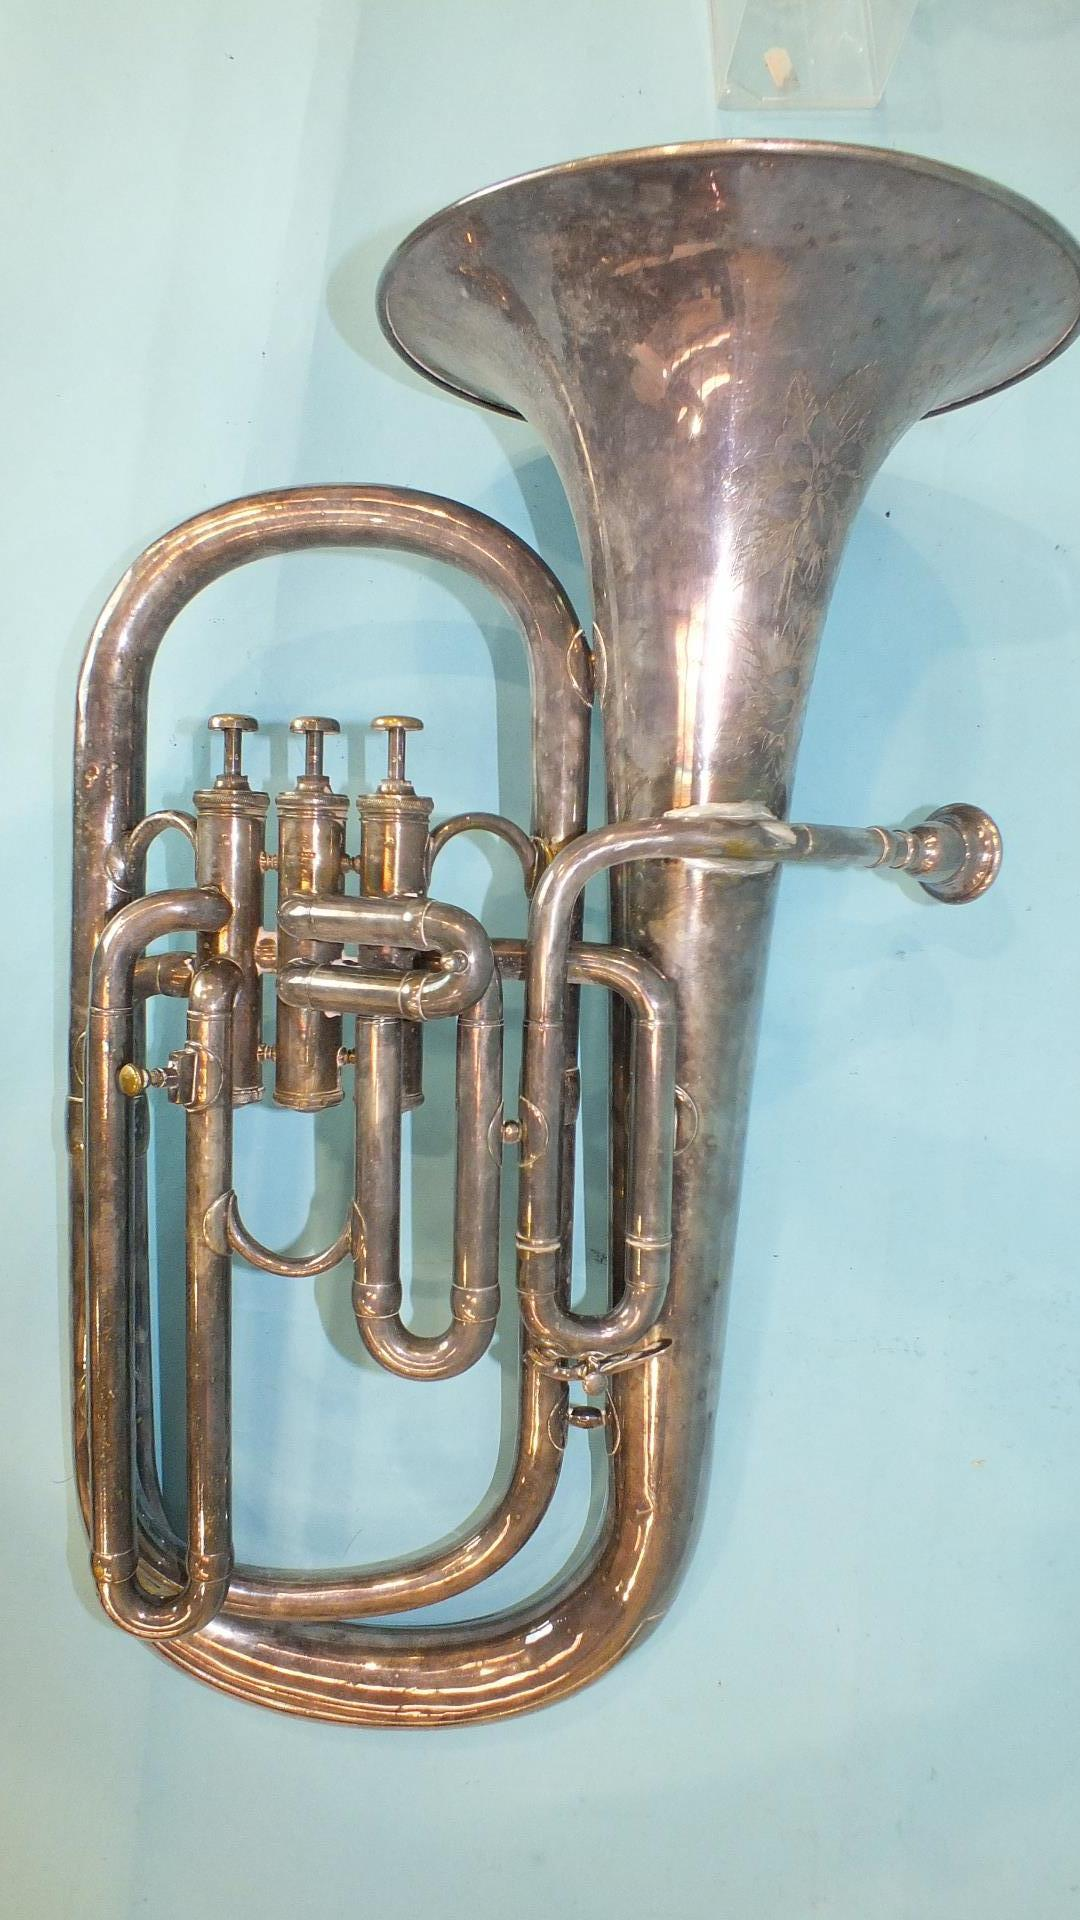 Lot 501 - A 'Superior Class' plated 3-valve euphonium by Hawkes & Son, Piccadilly, London, no.34662, (a/f),